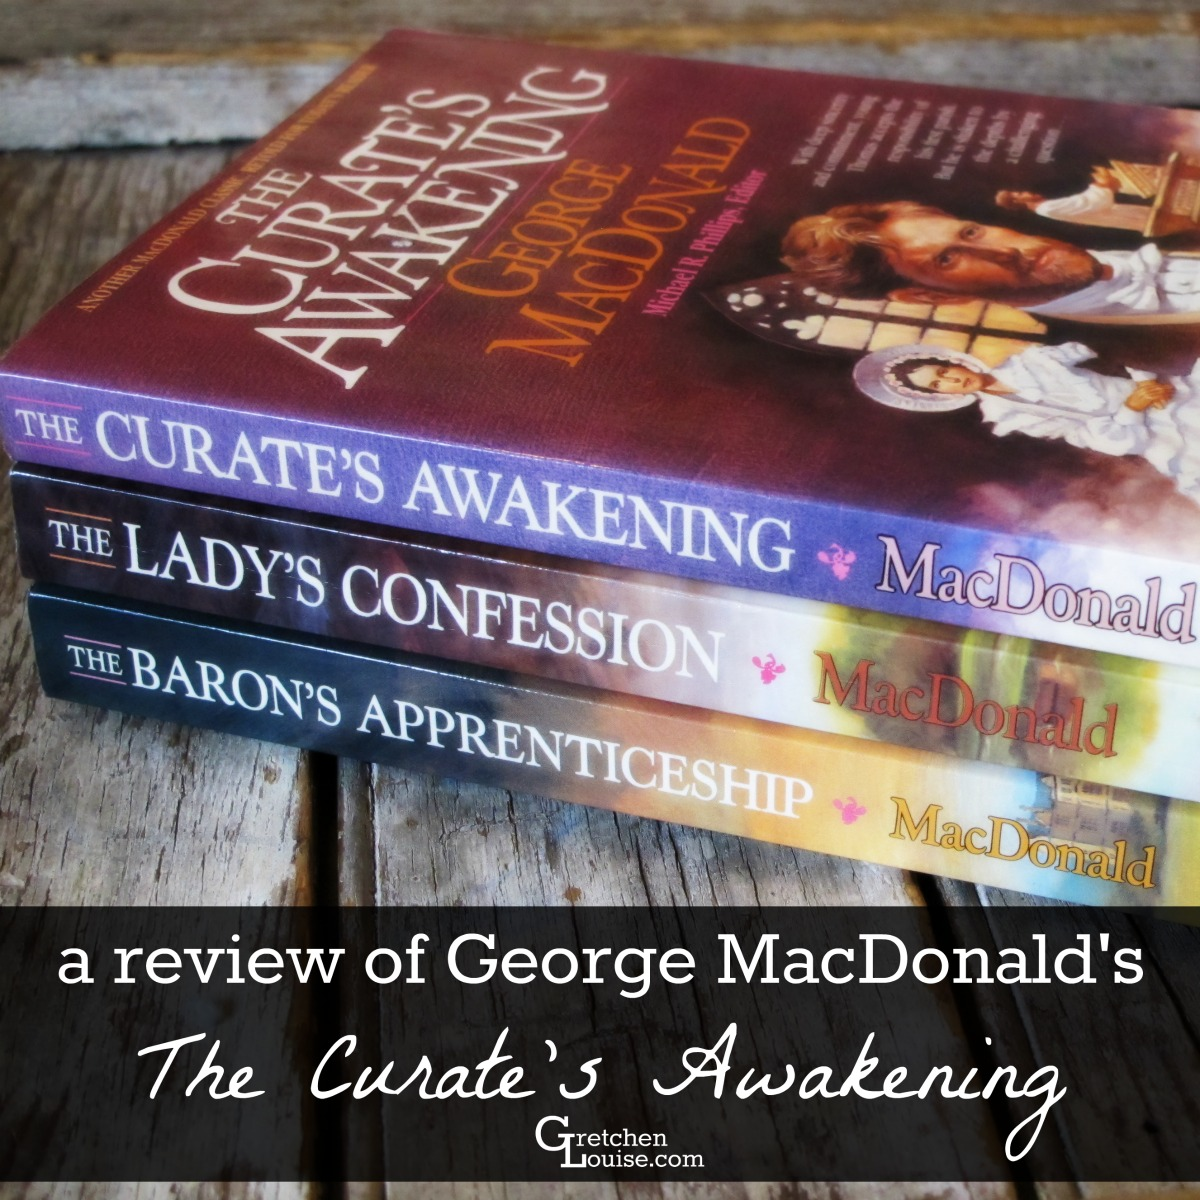 The Curate's Awakening by George MacDonald